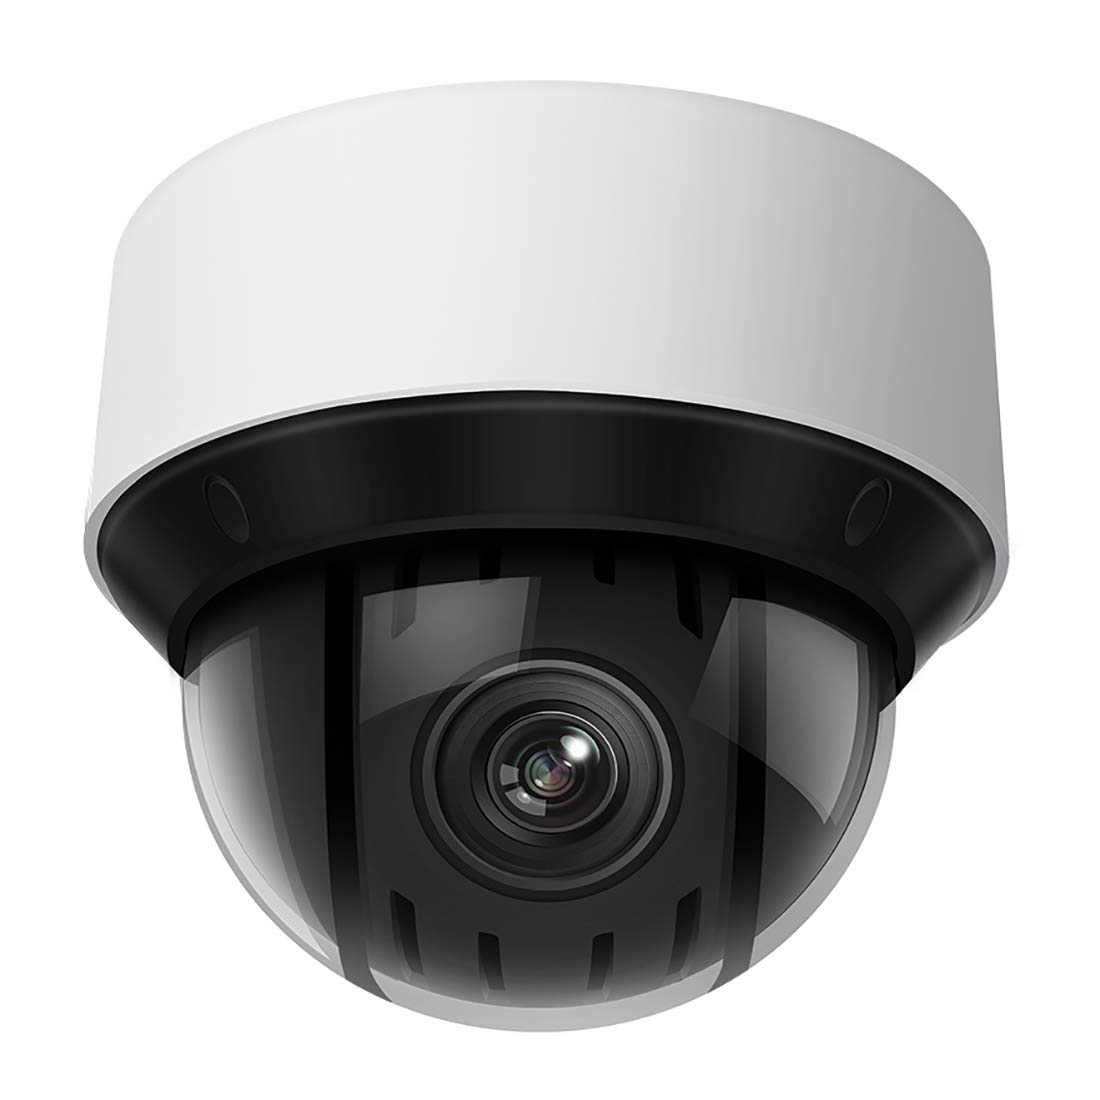 VIKYLIN PTZ 4MP Dome IP Camera OEM DS-2DE4A425IW-DE,25x Optical Zoom,4.8 120 mm Lens,165ft Night Vision H.265 H.265 Outdoor Camera with Audio Alarm I O,Auto-Tracking,360 Pan 90 Tilt,SD Card Slot